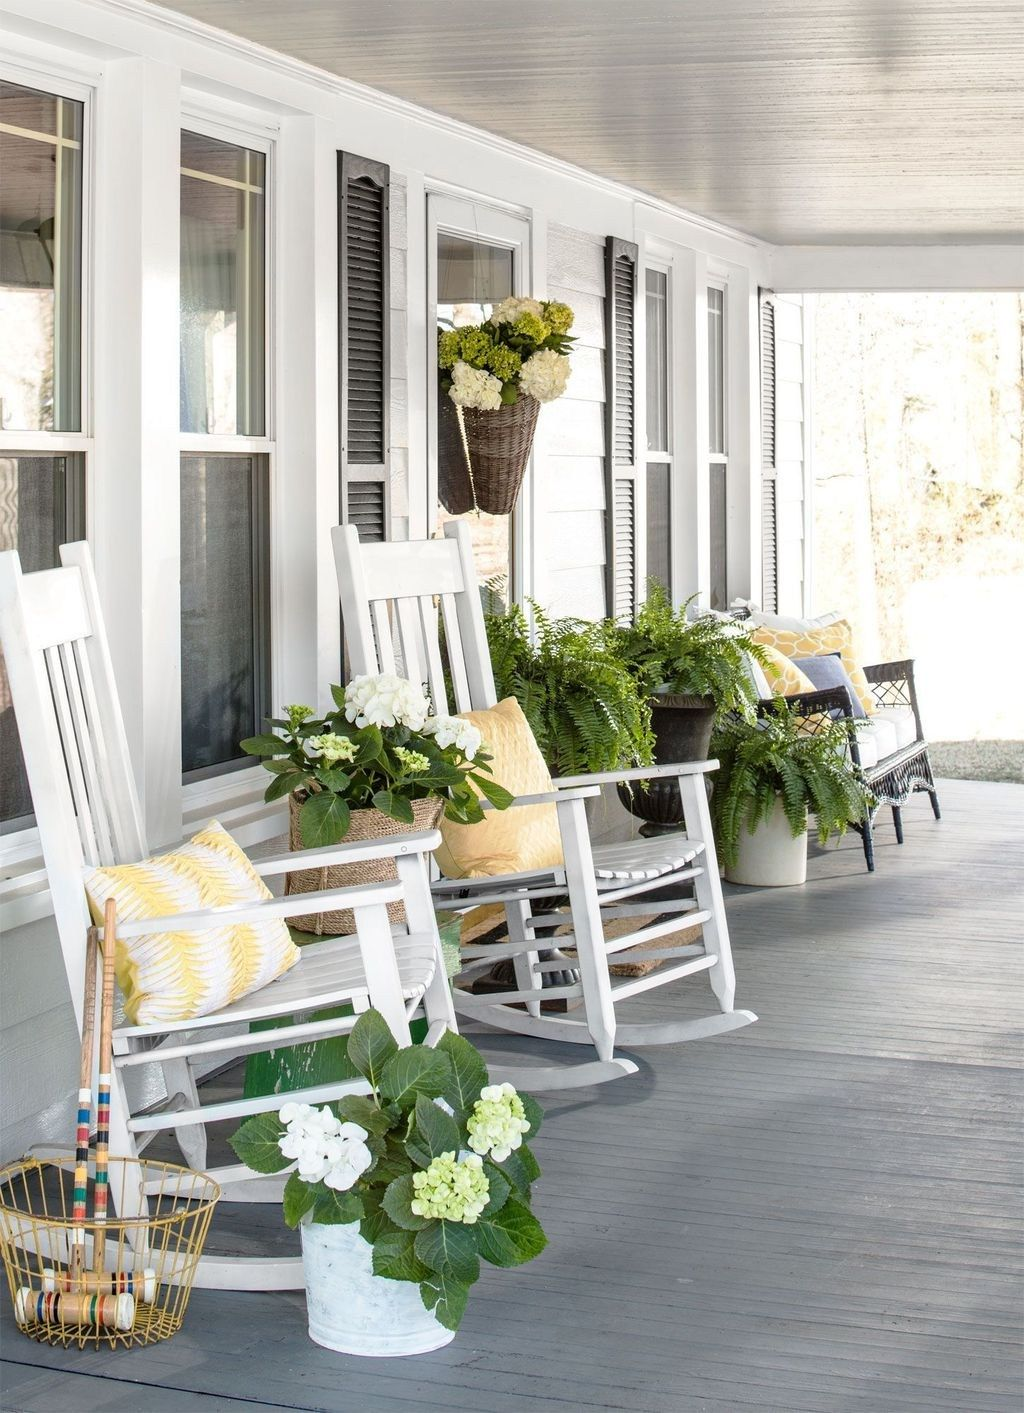 Affordable And Cheerful Summer Indoor And Outdoor Decor Ideas 25 Front Porch Decorating Porch Furniture Front Porch Design